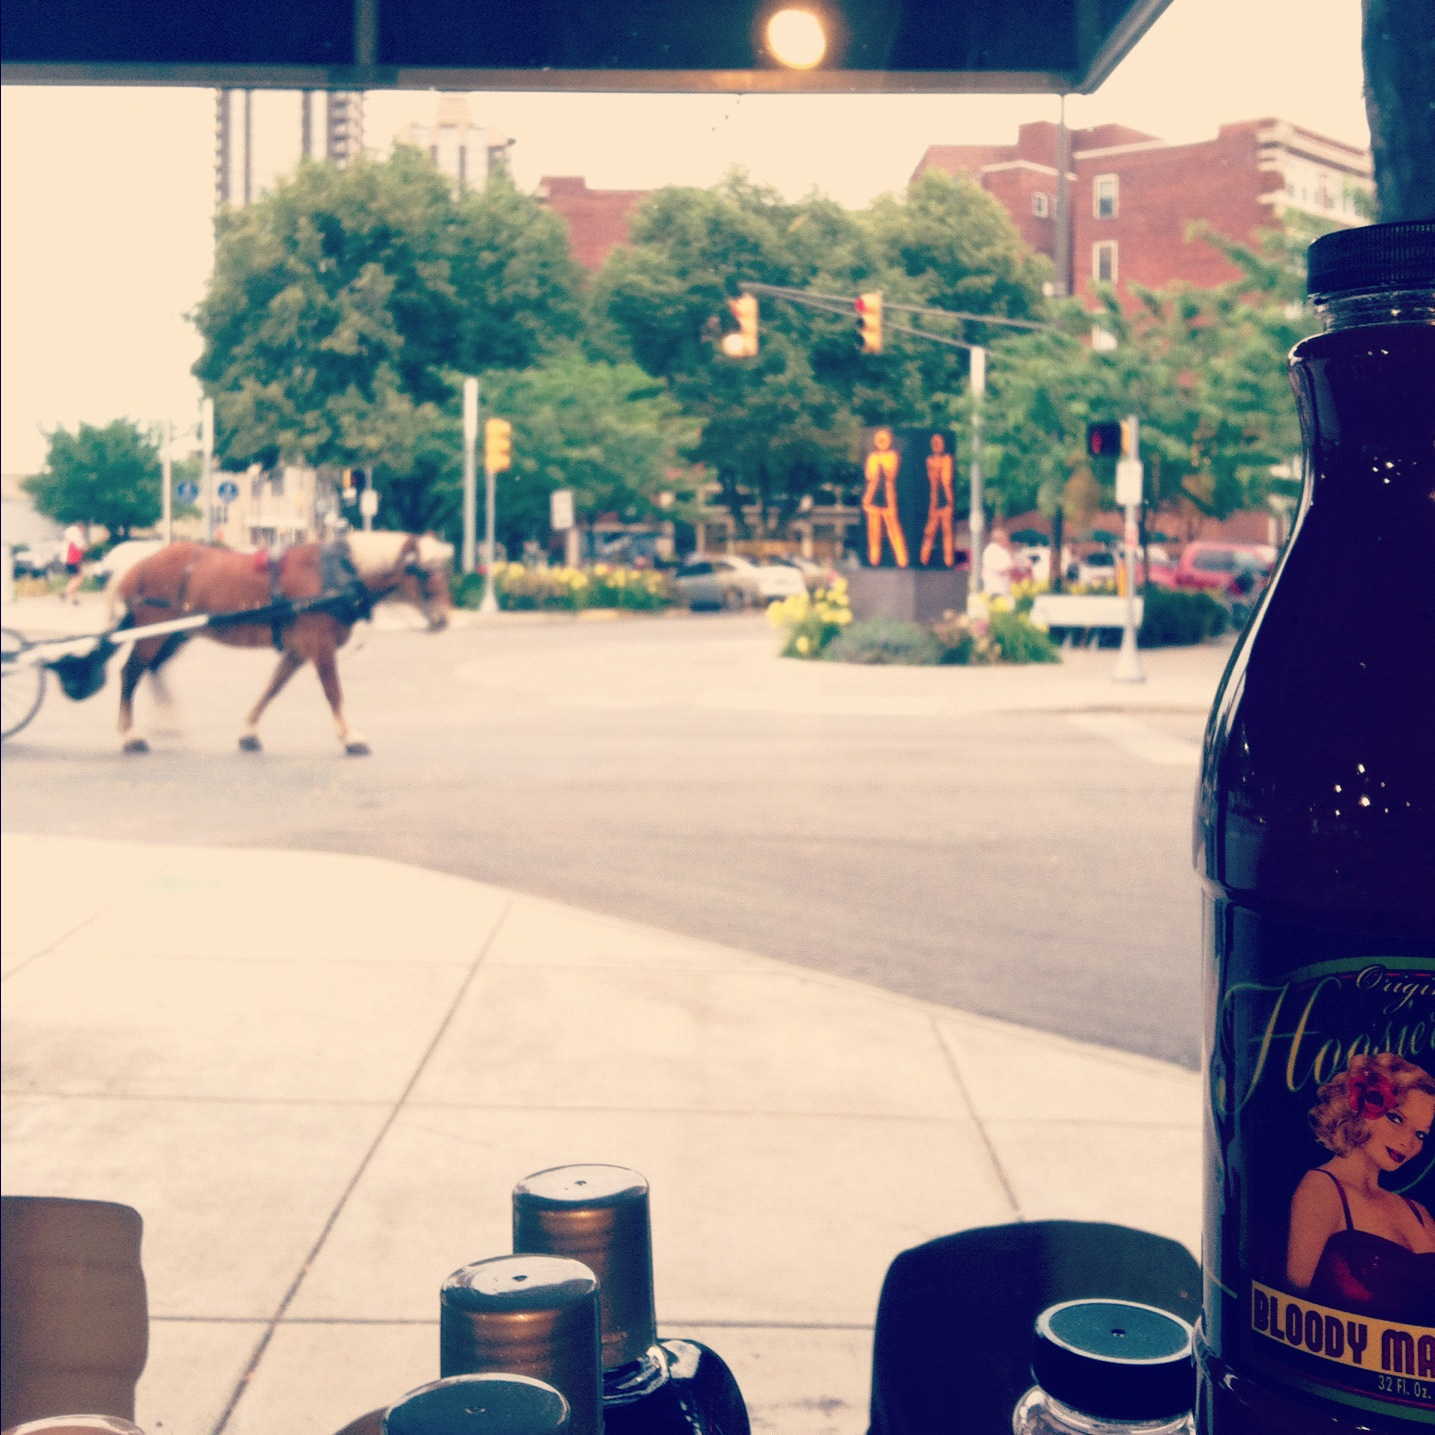 Room With a View: Downtown Marsh to Mass Ave